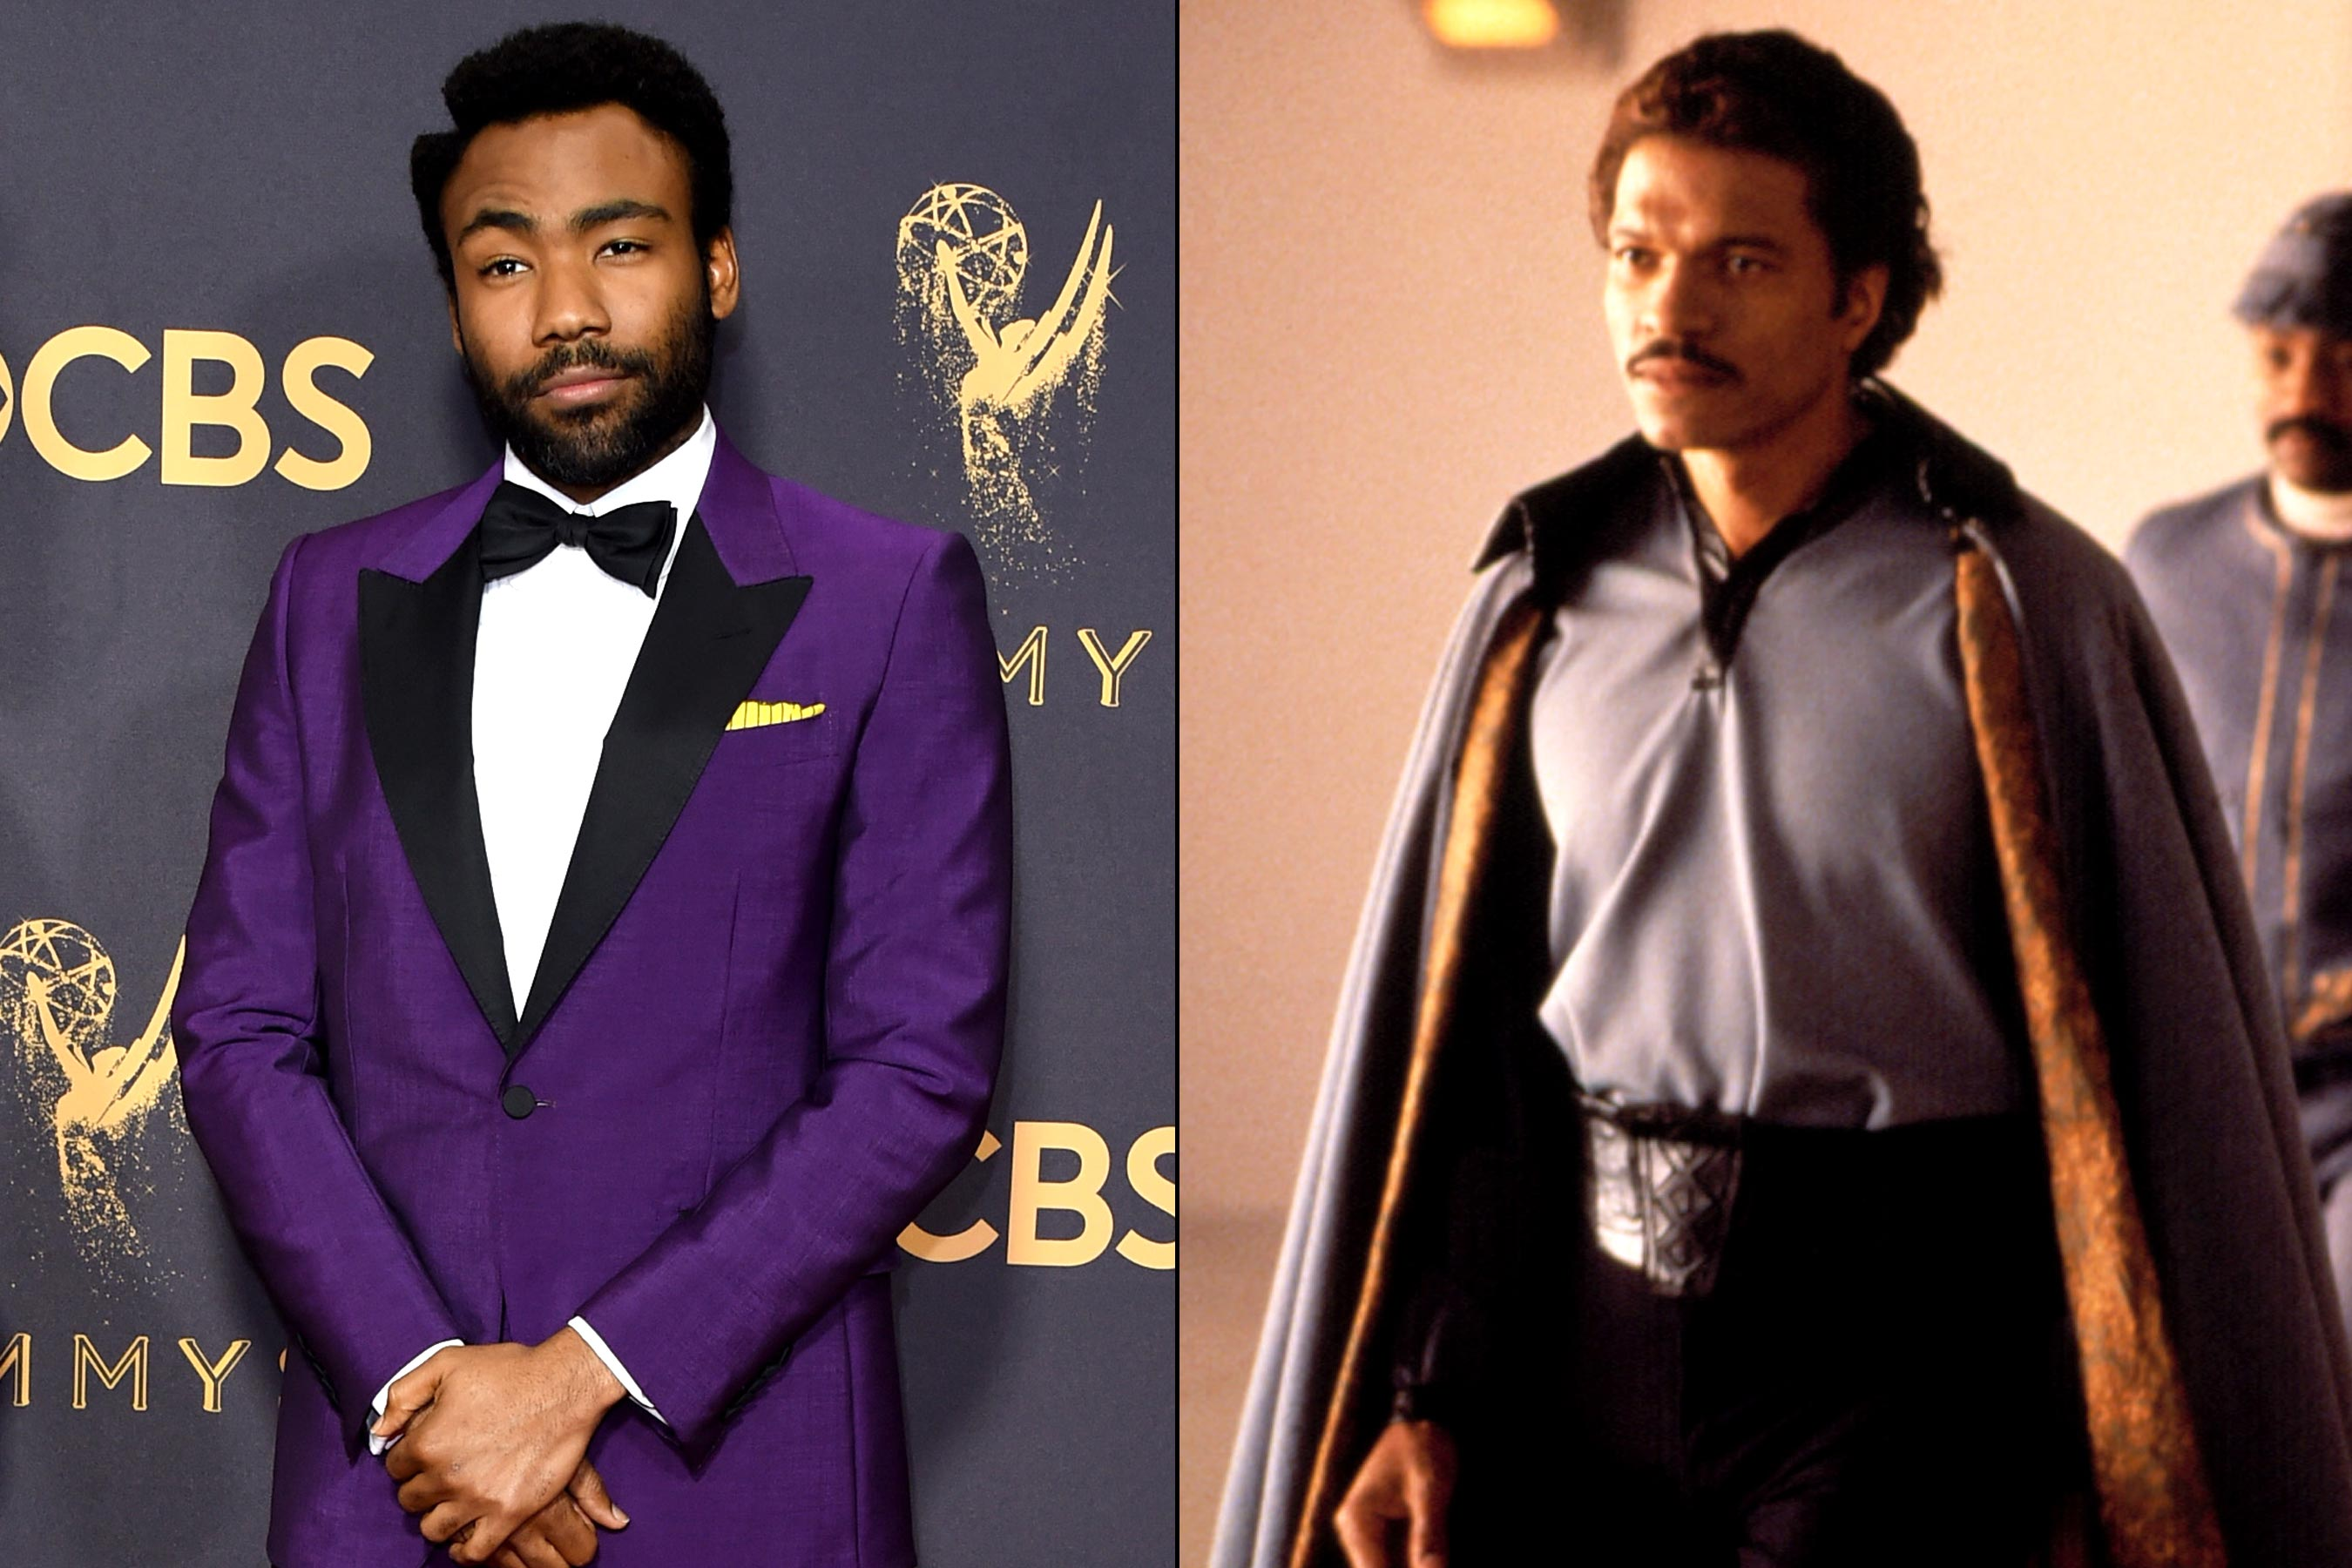 Han Solo: Donald Glover says Ron Howard shakeup didn't change film much